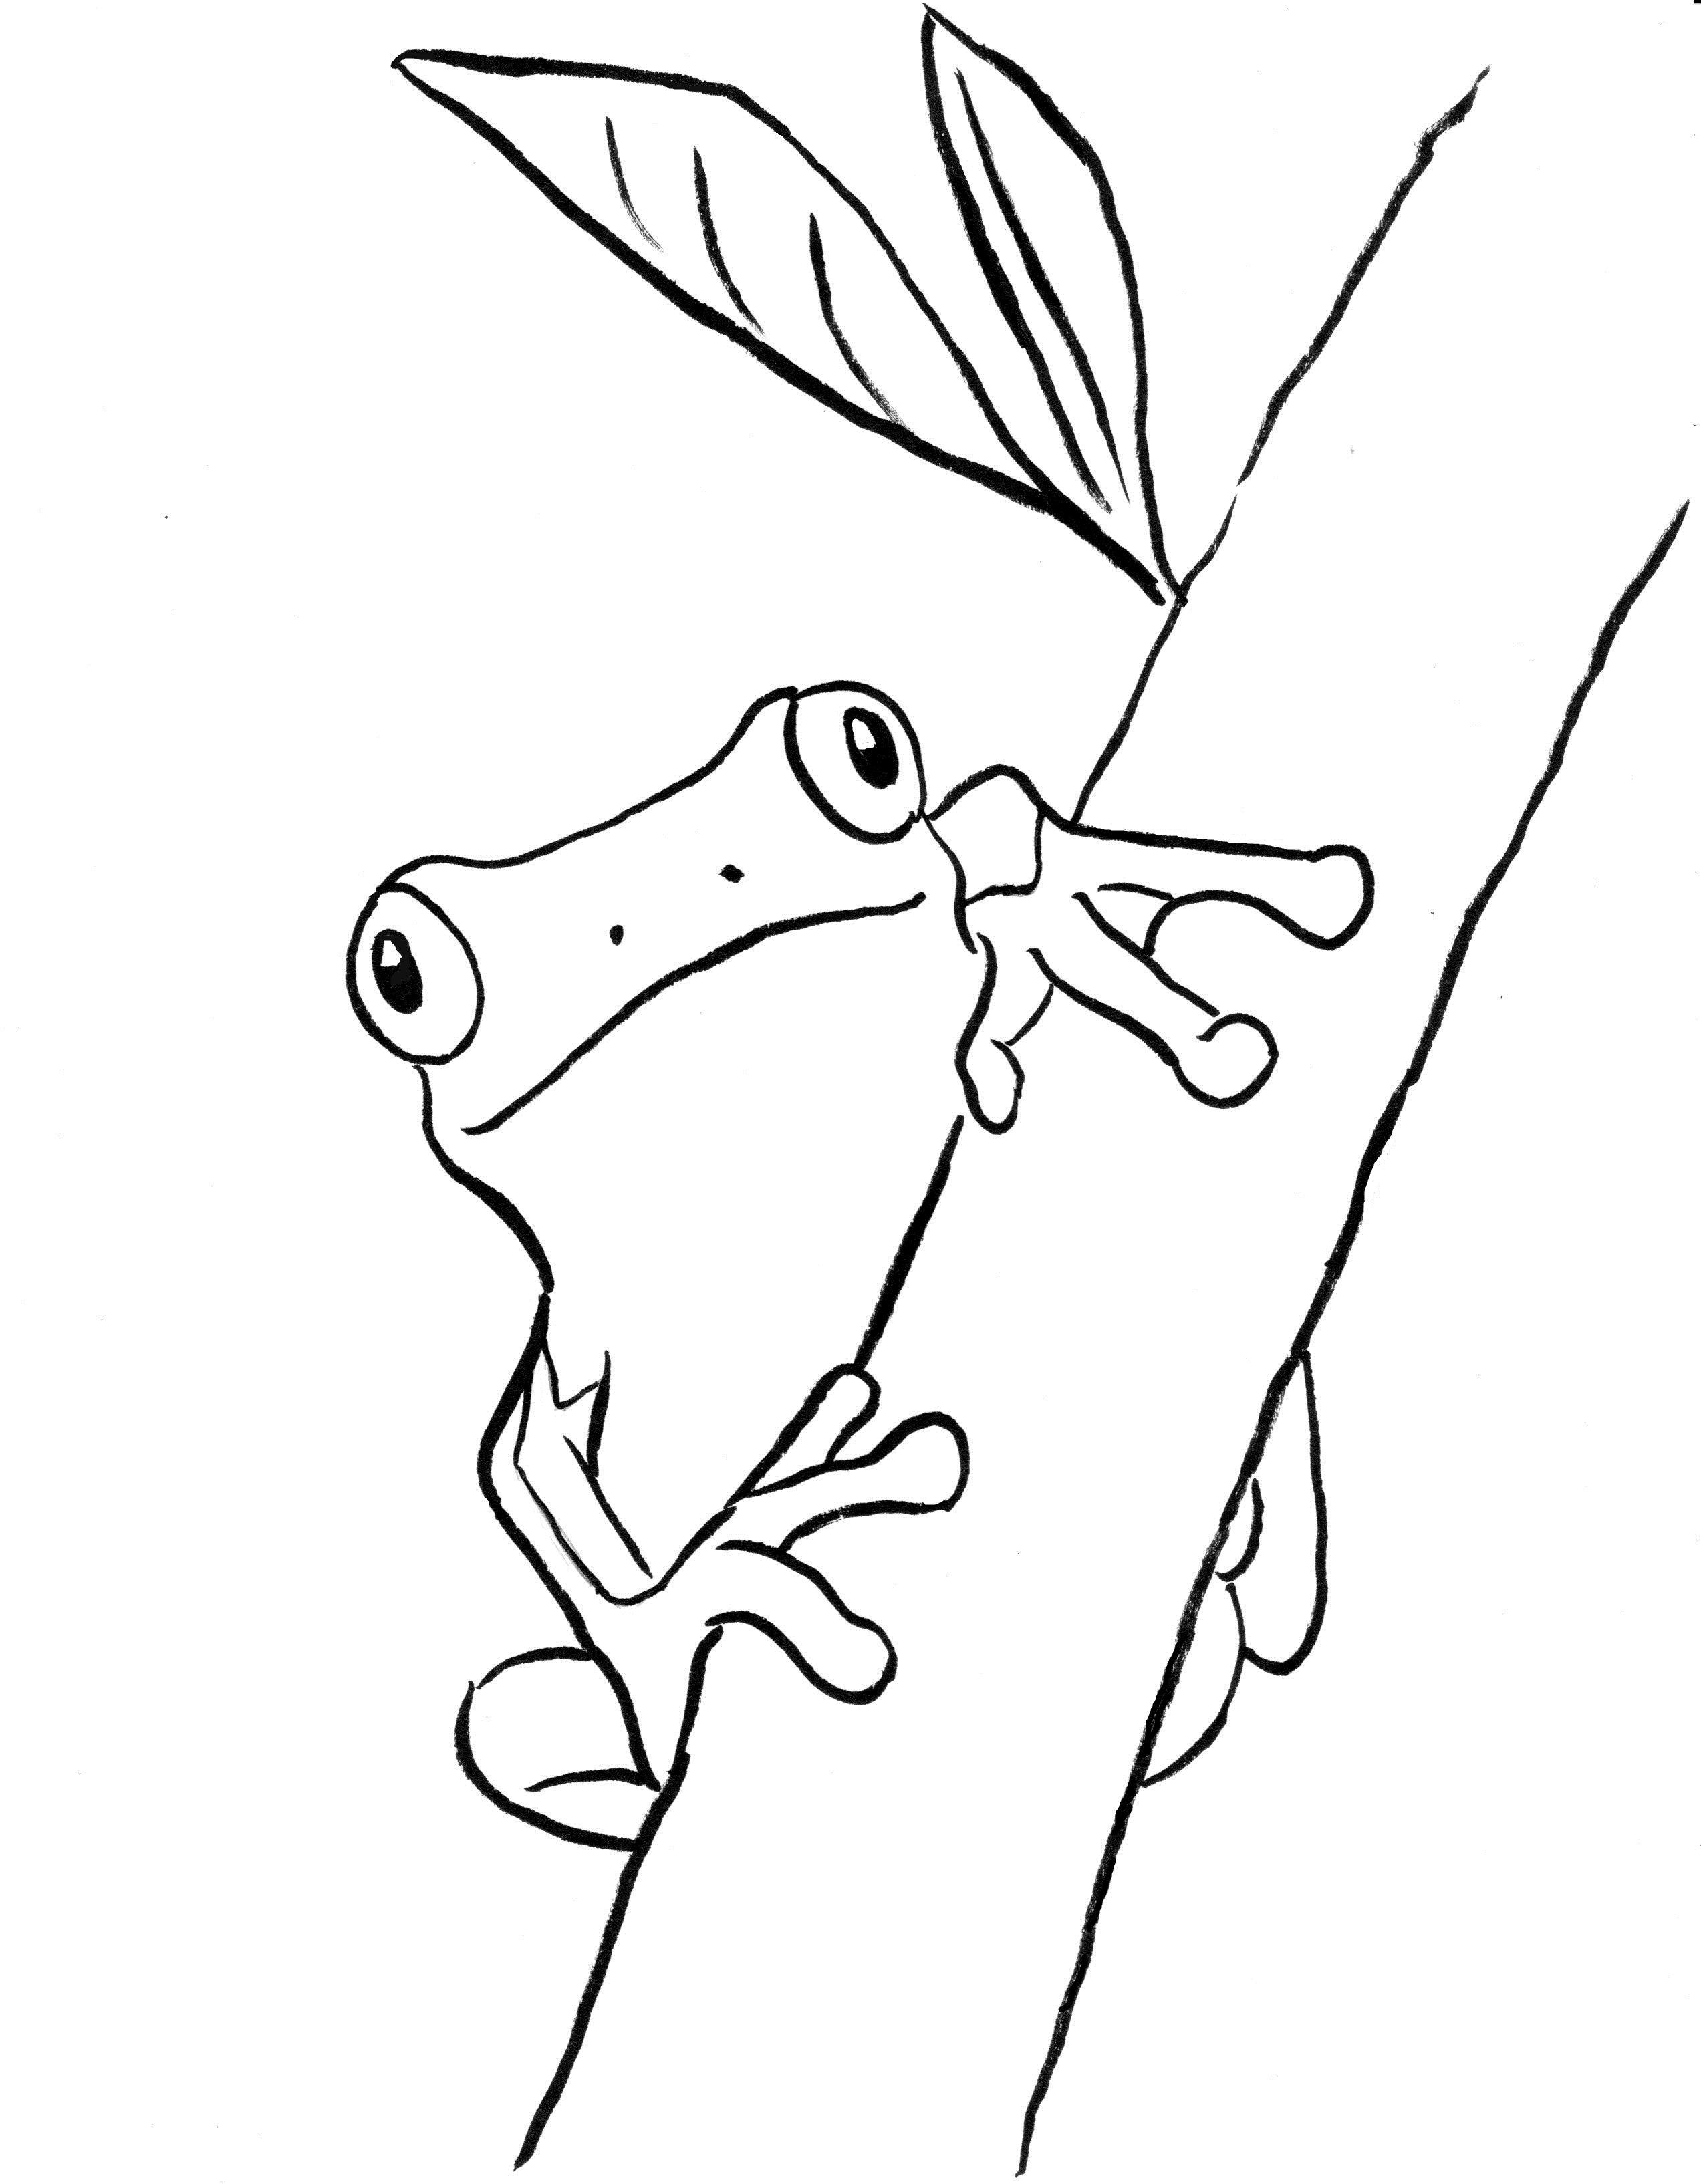 green tree frog coloring page tree frog coloring pages free download on clipartmag green coloring tree page frog